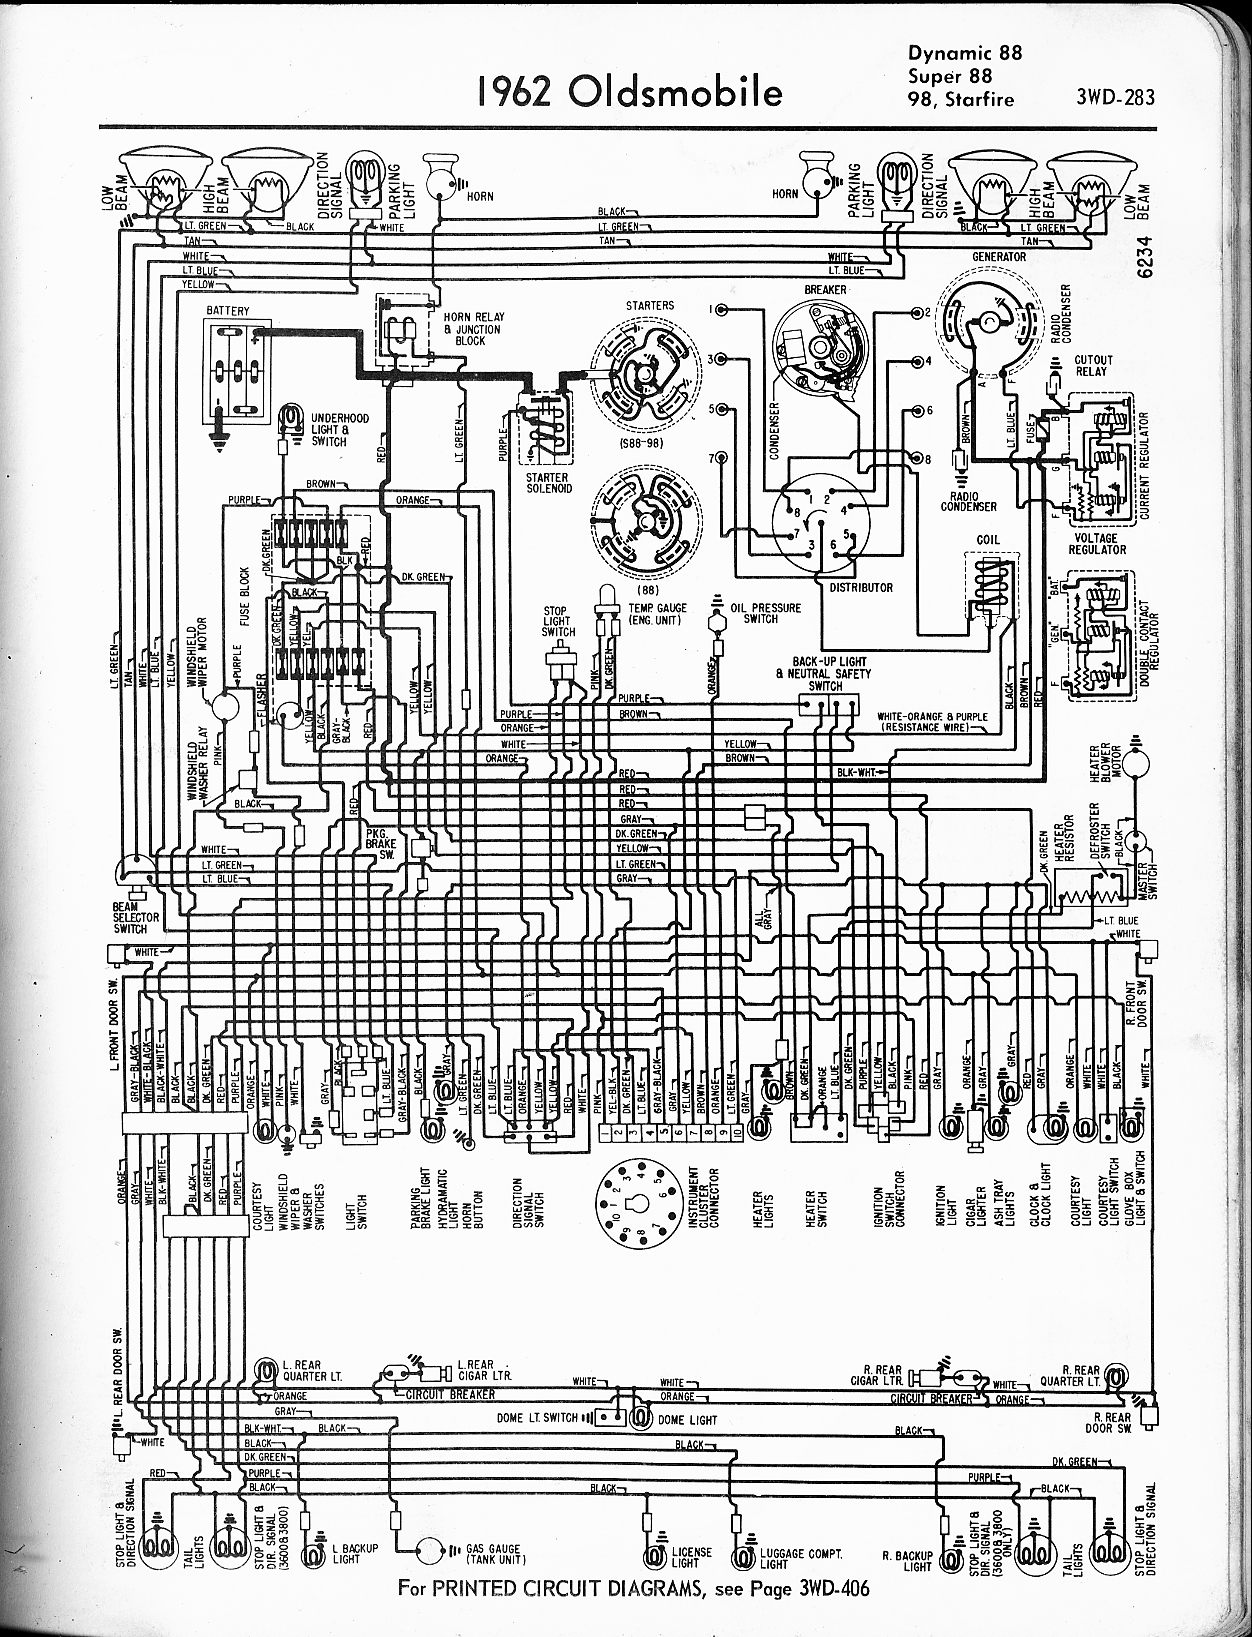 MWire5765 283 oldsmobile wiring diagrams the old car manual project on 1962 oldsmobile wiring diagram